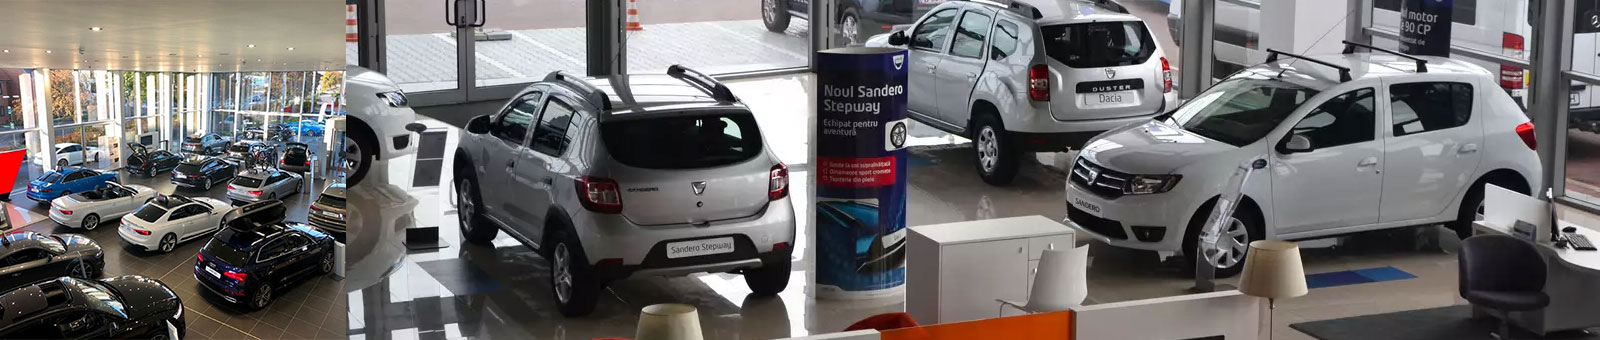 Top Car Showrooms in Delhi